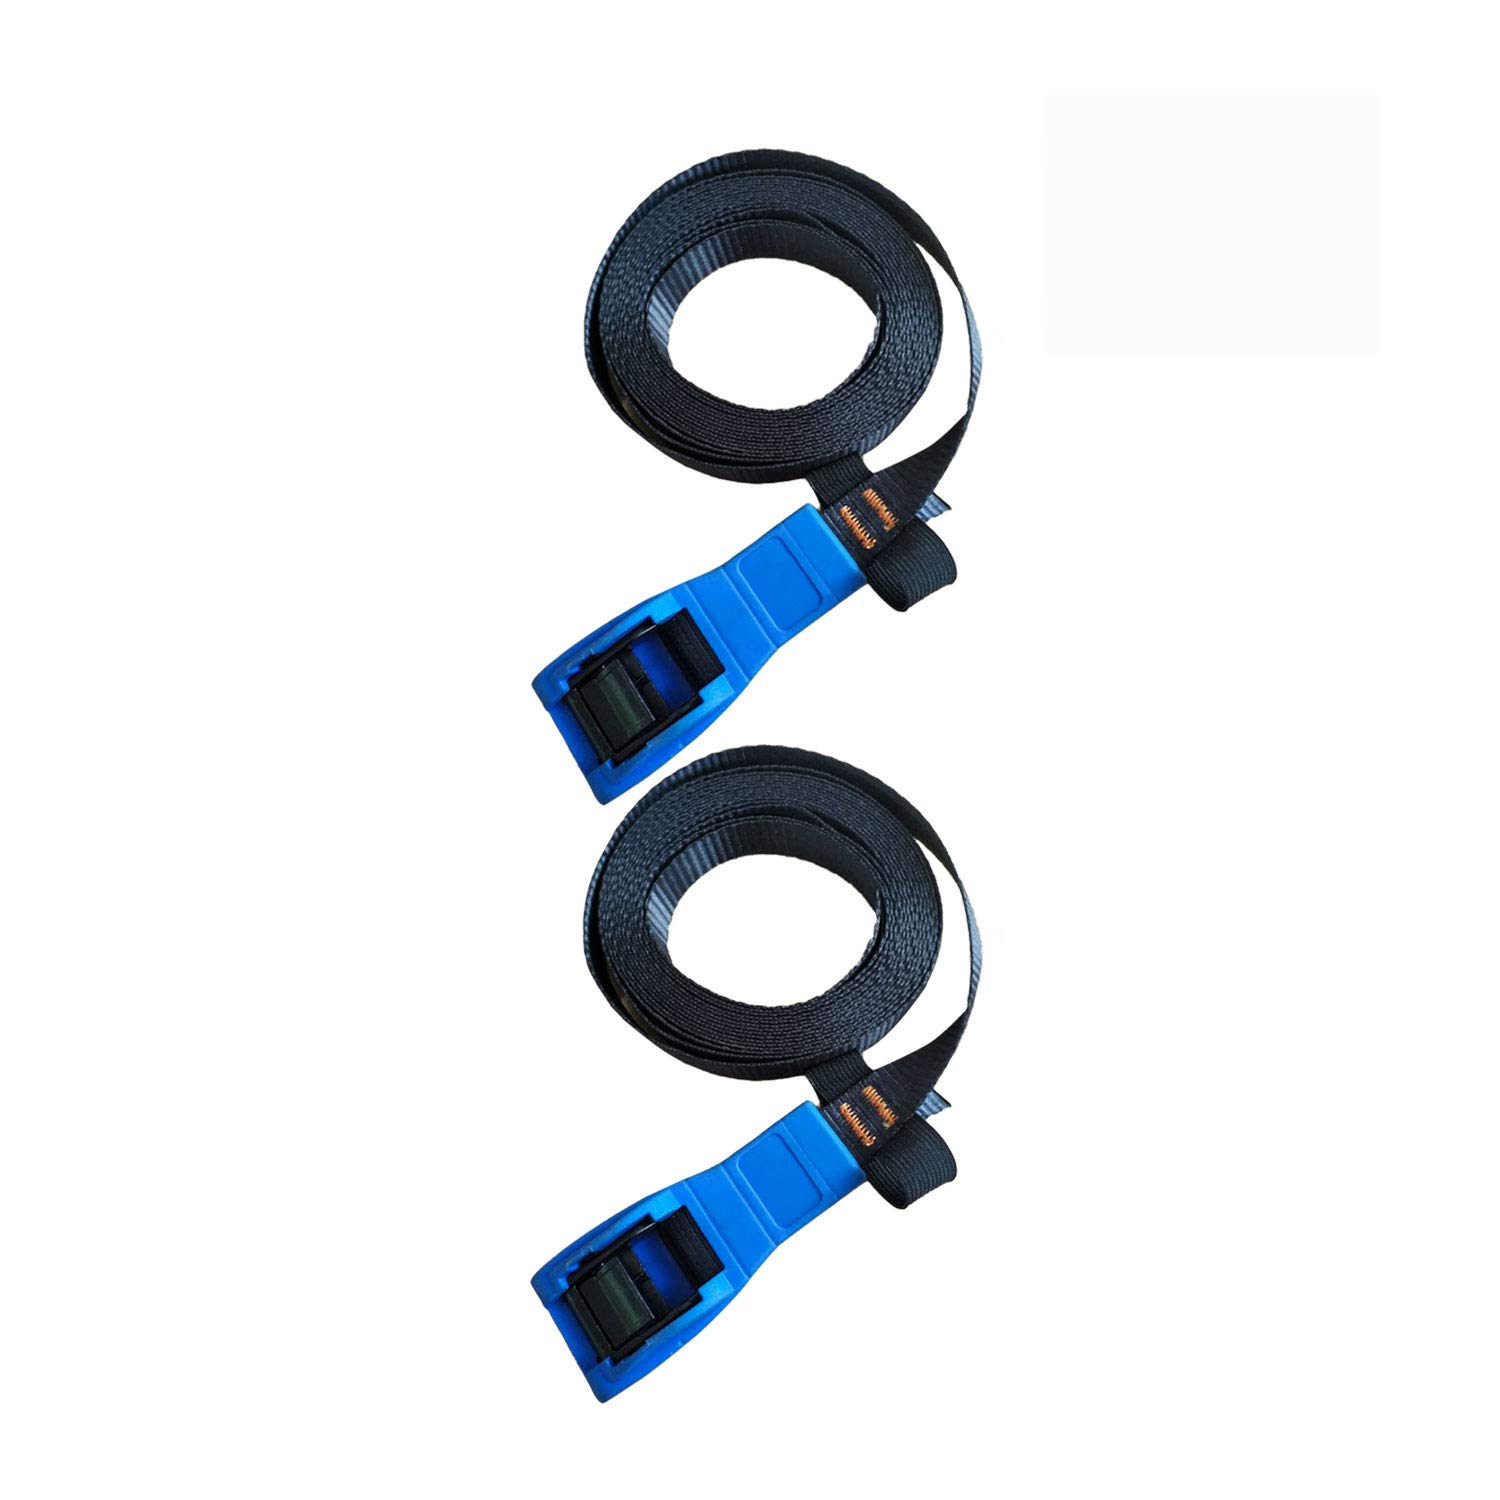 Onefeng Sports 2 Pack 16' Tie Down Strap Lashing Strap Cargo Tie-down Strap Padded Cam Lock Buckle (2, 16 FT)